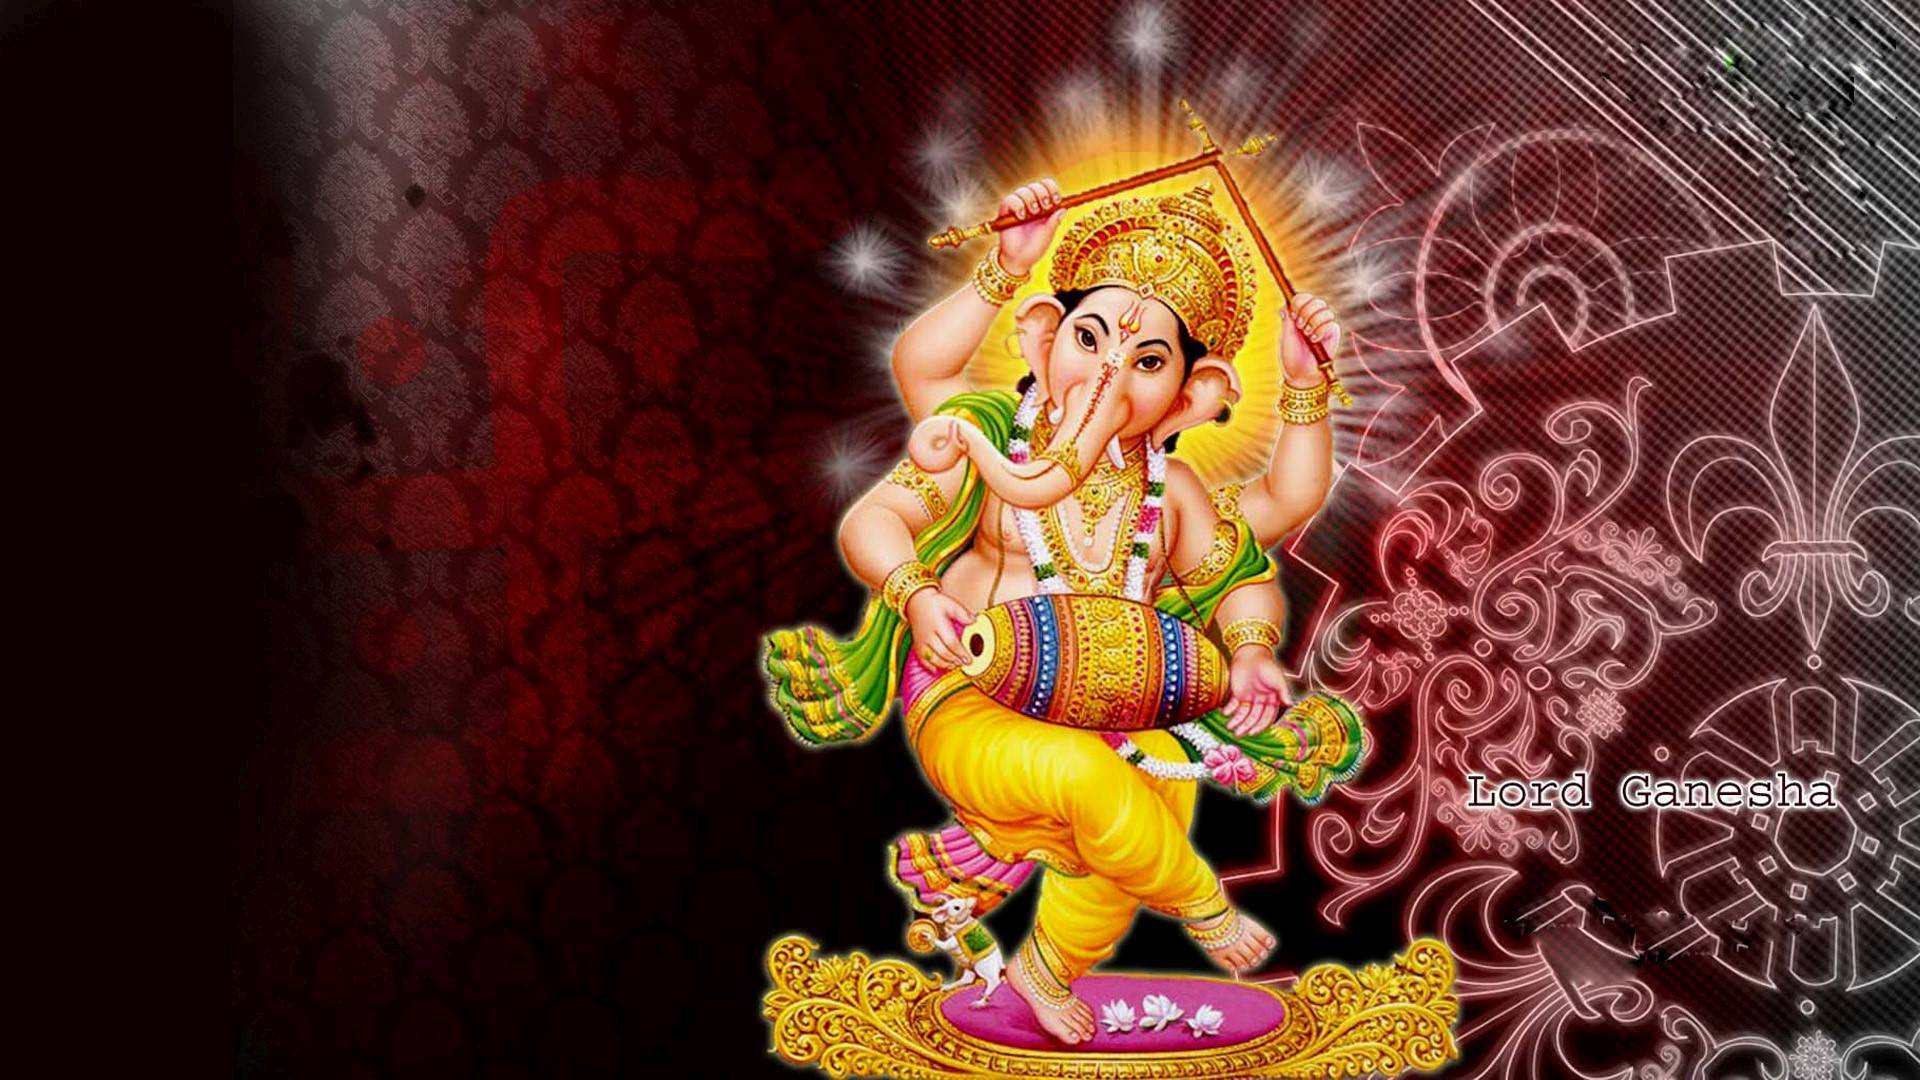 Lord Ganesha 1080p Hindu God HD Desktop Wallpapers